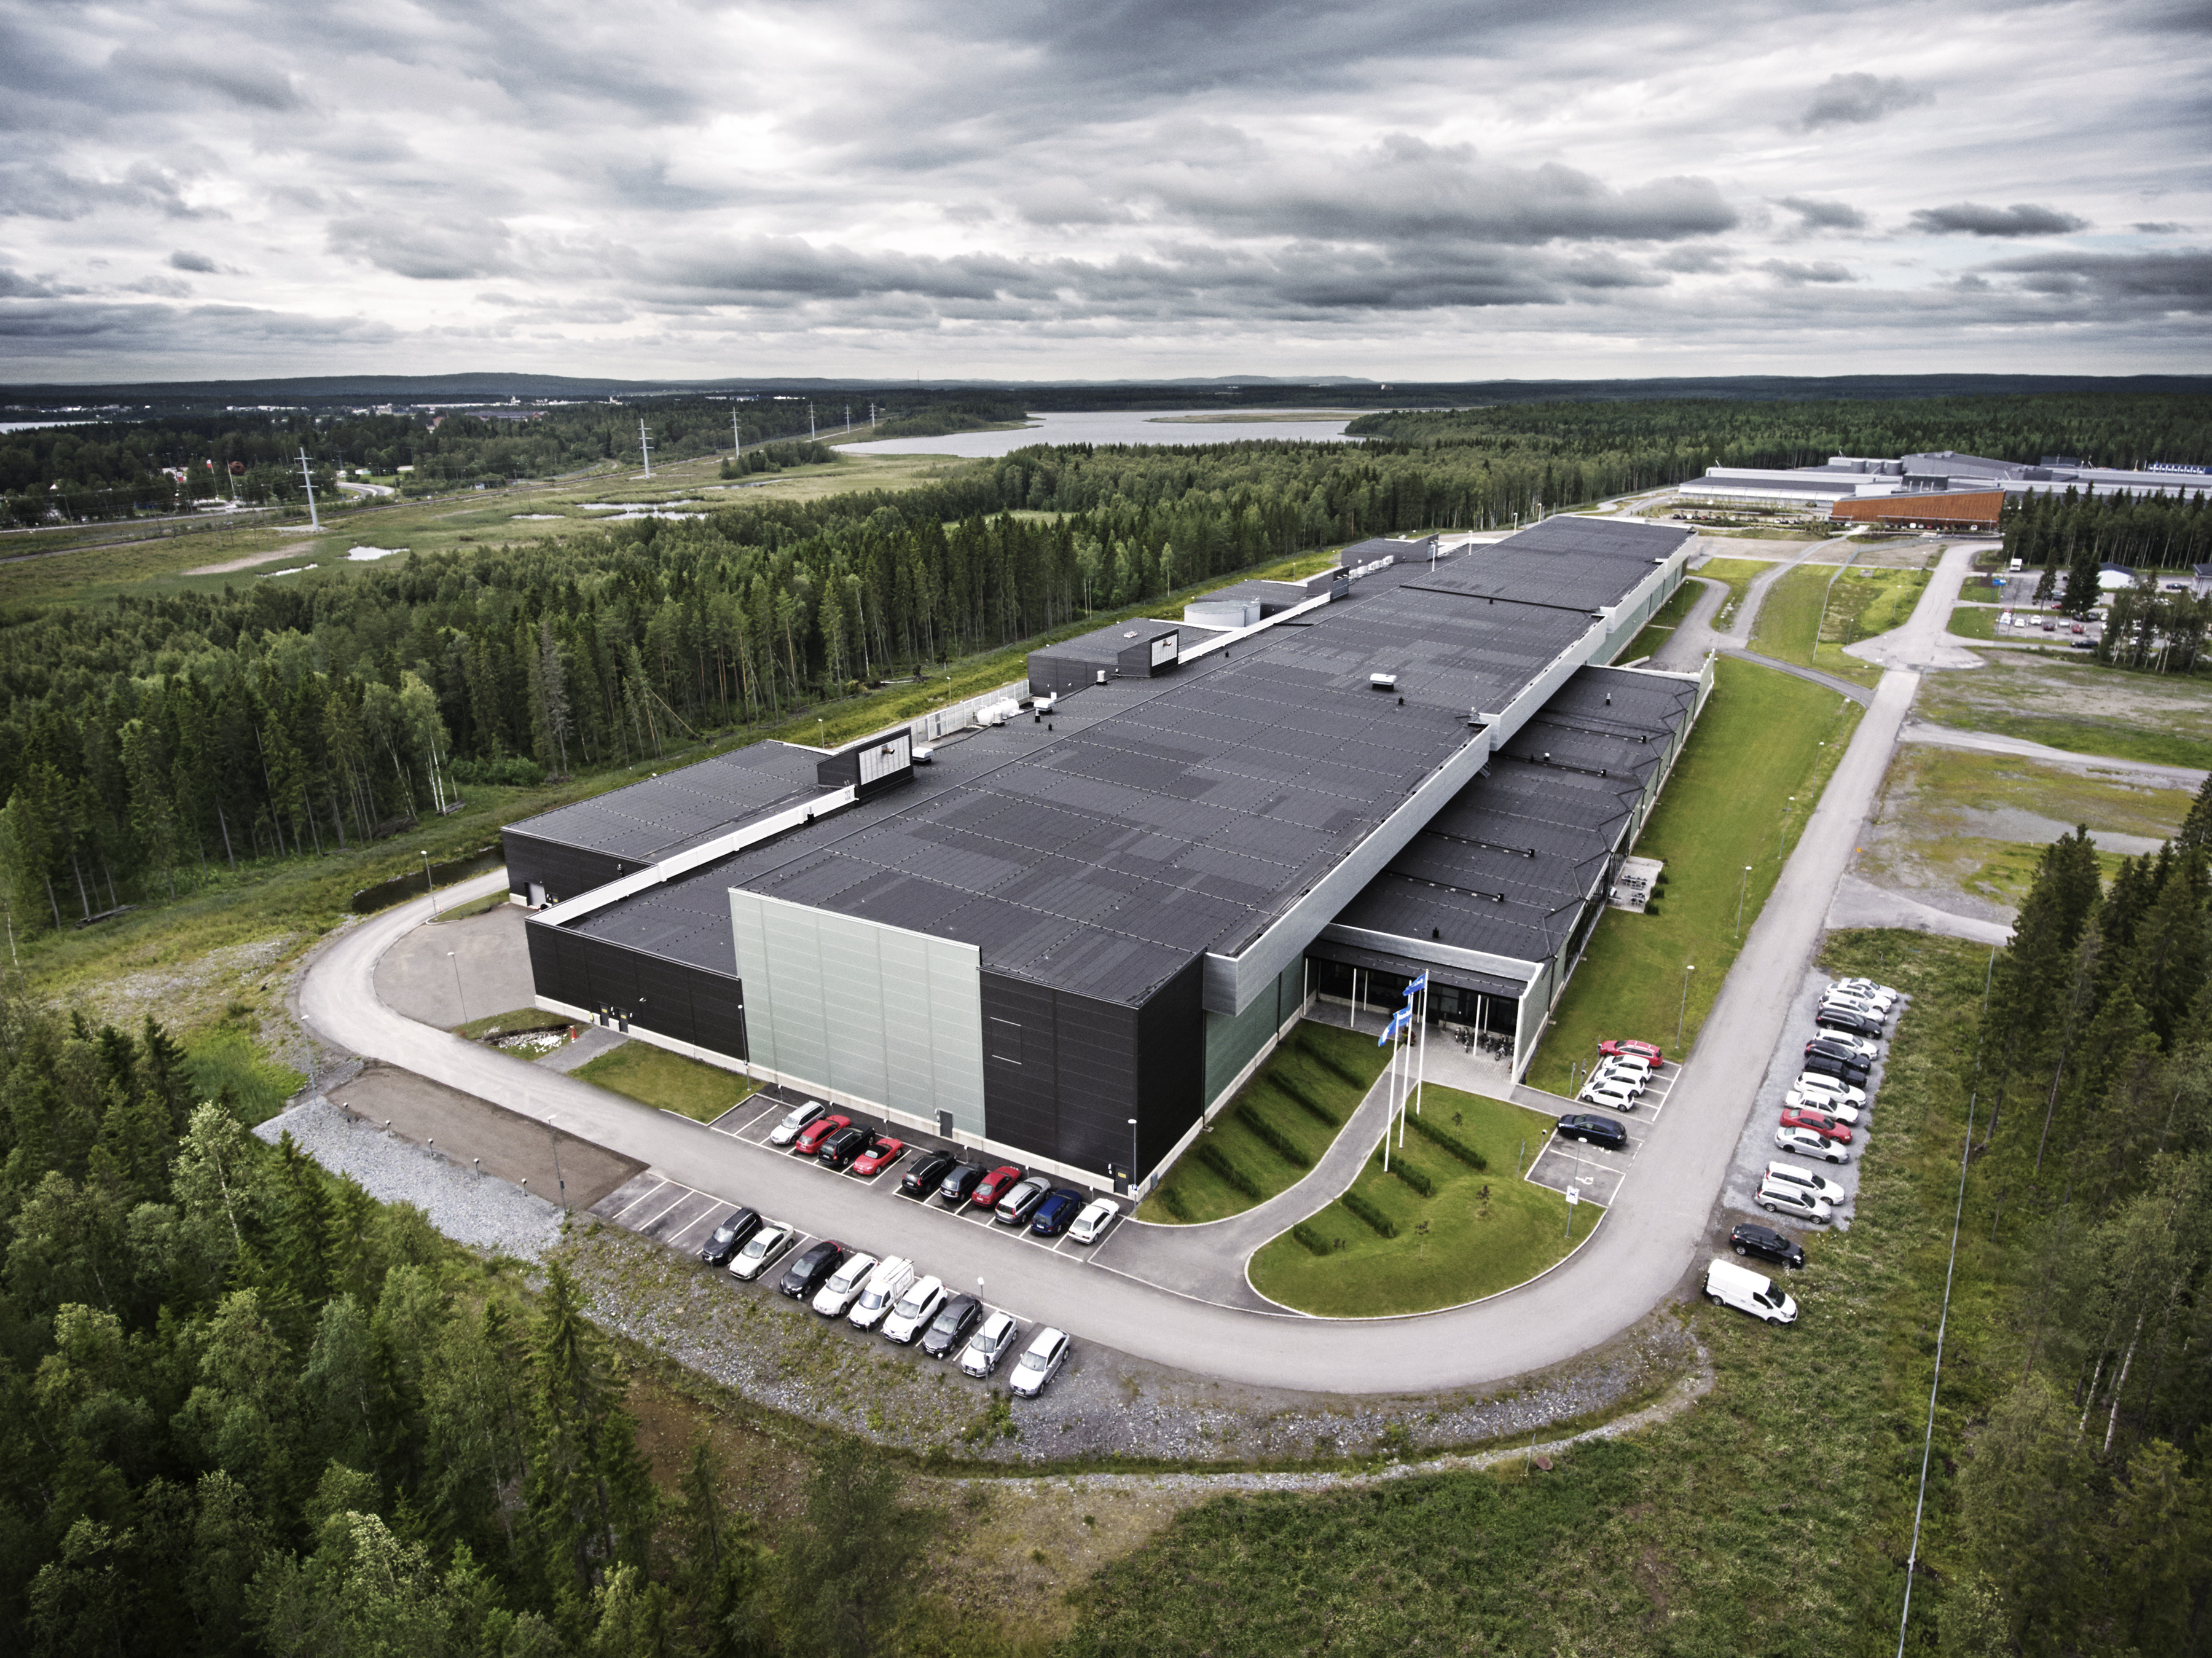 Luleå, just south of the Arctic Circle and near the top of the world, was an appealing location for a data center thanks to its cool                                climate and renewable energy sources.